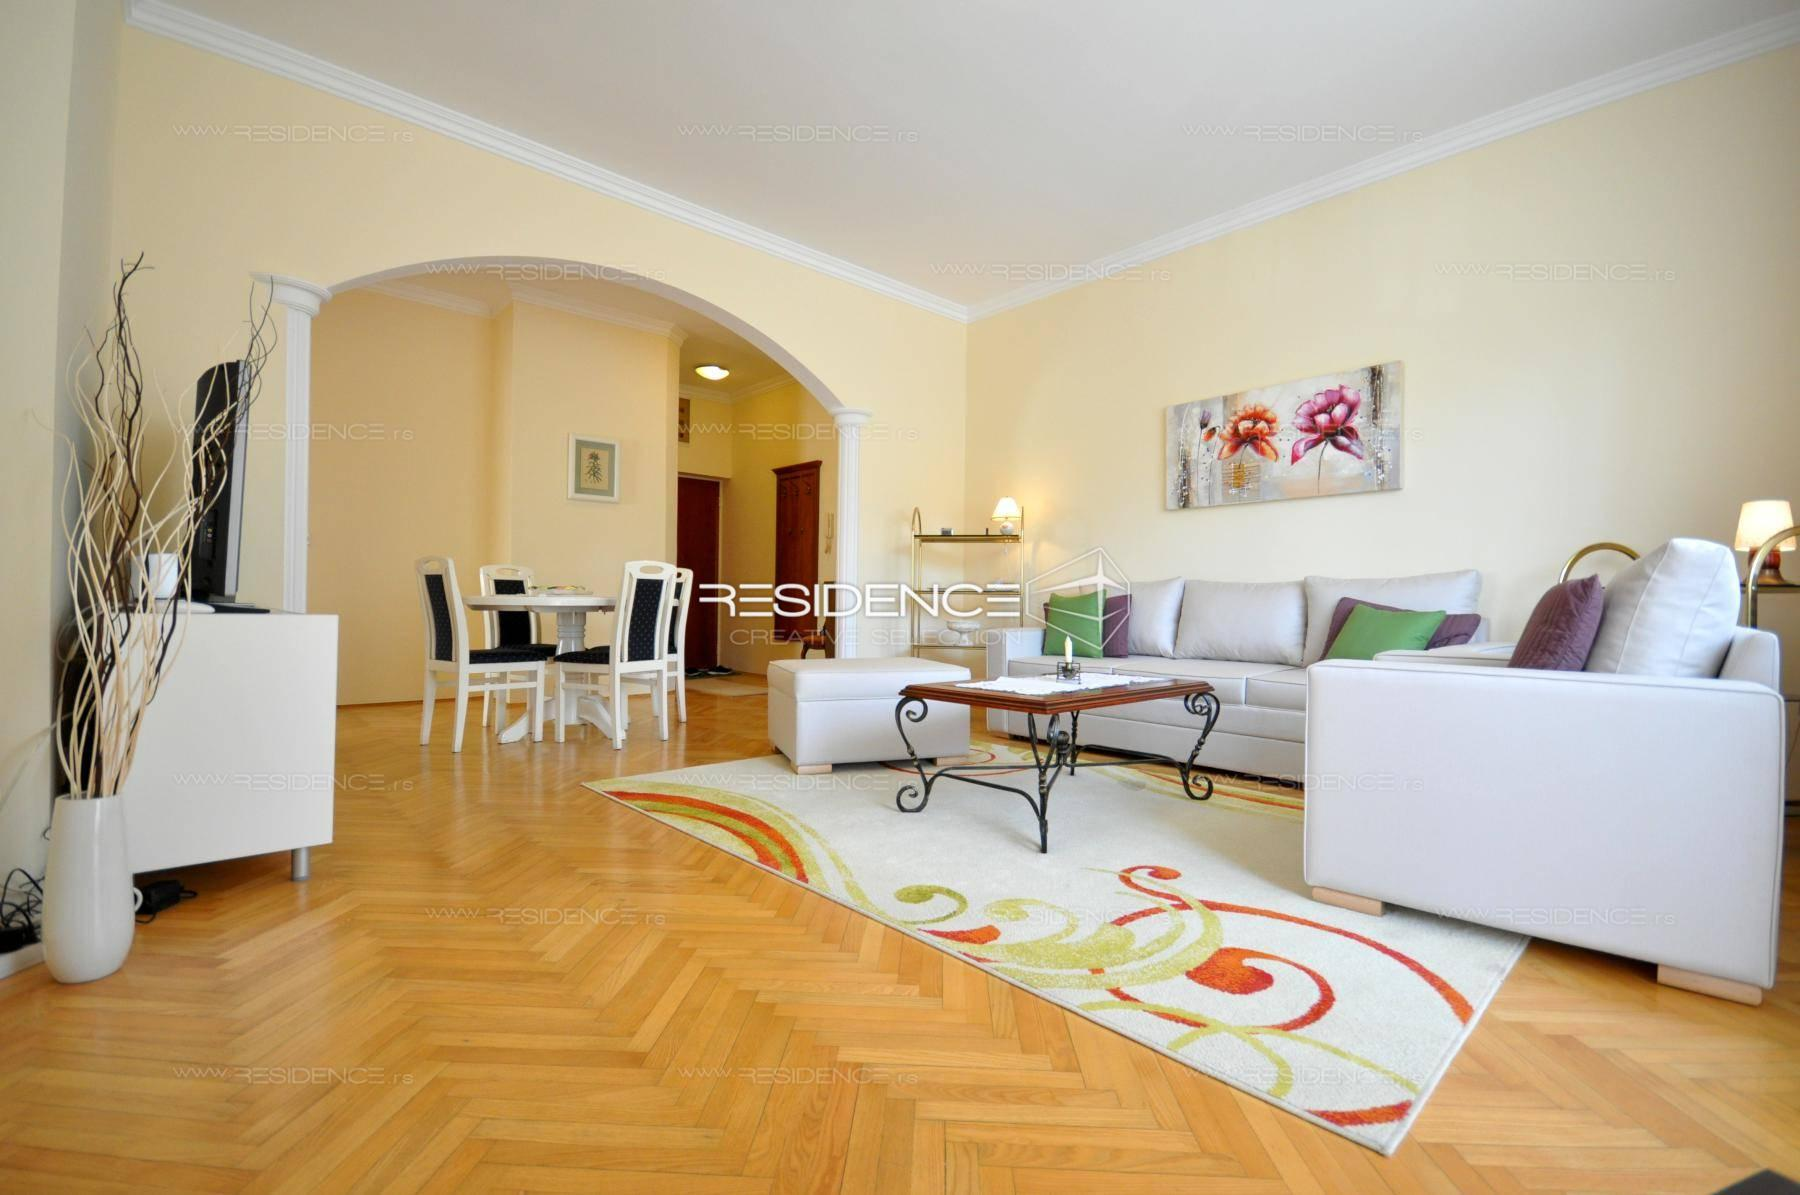 Cute, furnished, two bedroom apartment in Dedinje | Residence